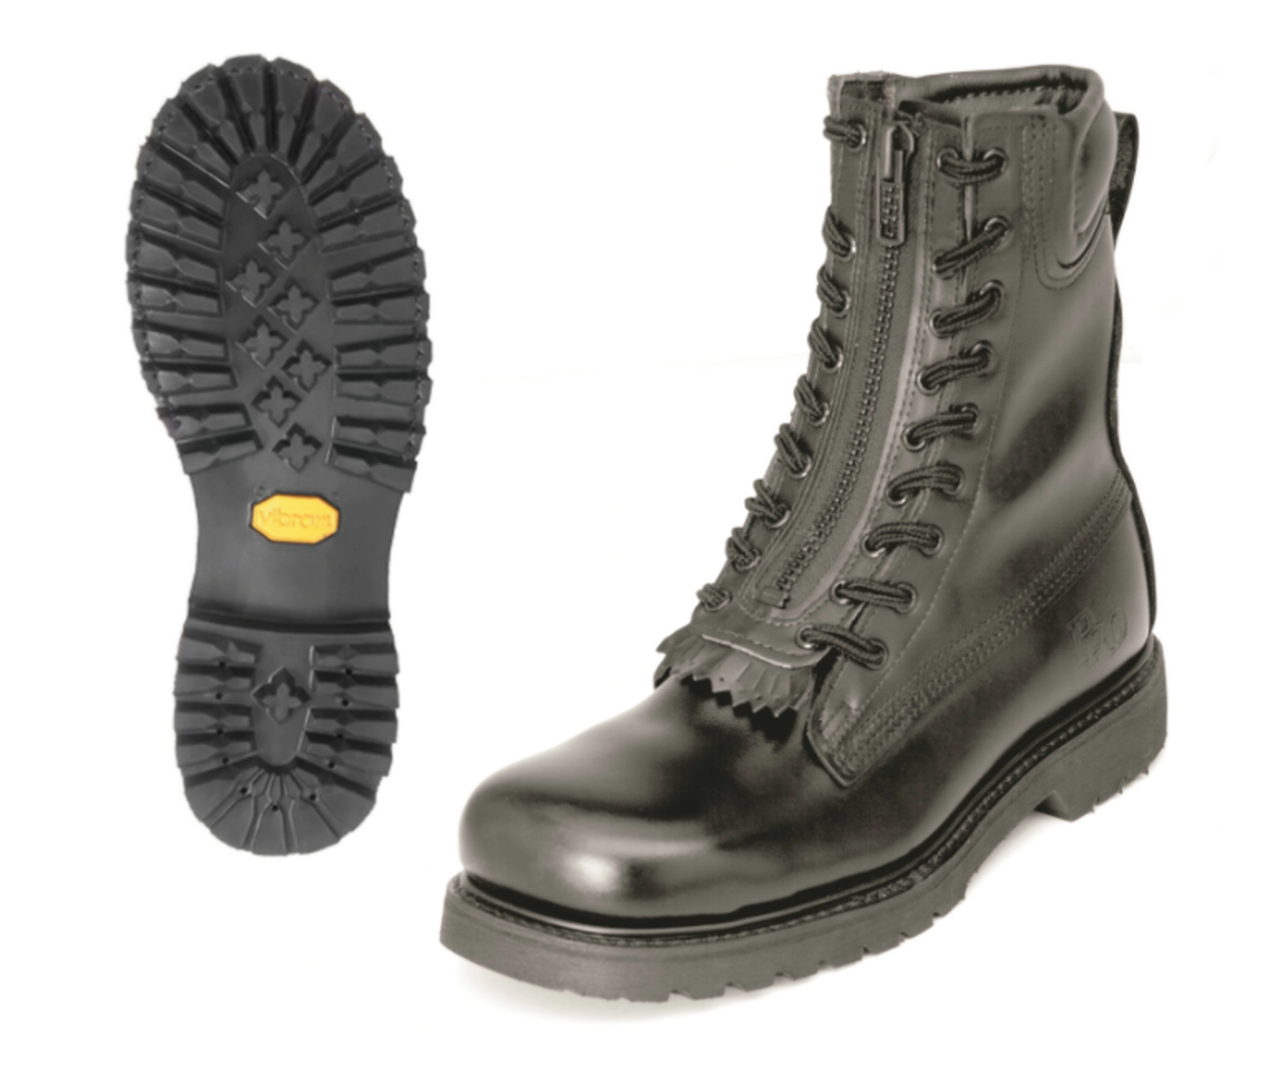 Pro Warrington 3003 8 inch Black Station Boot